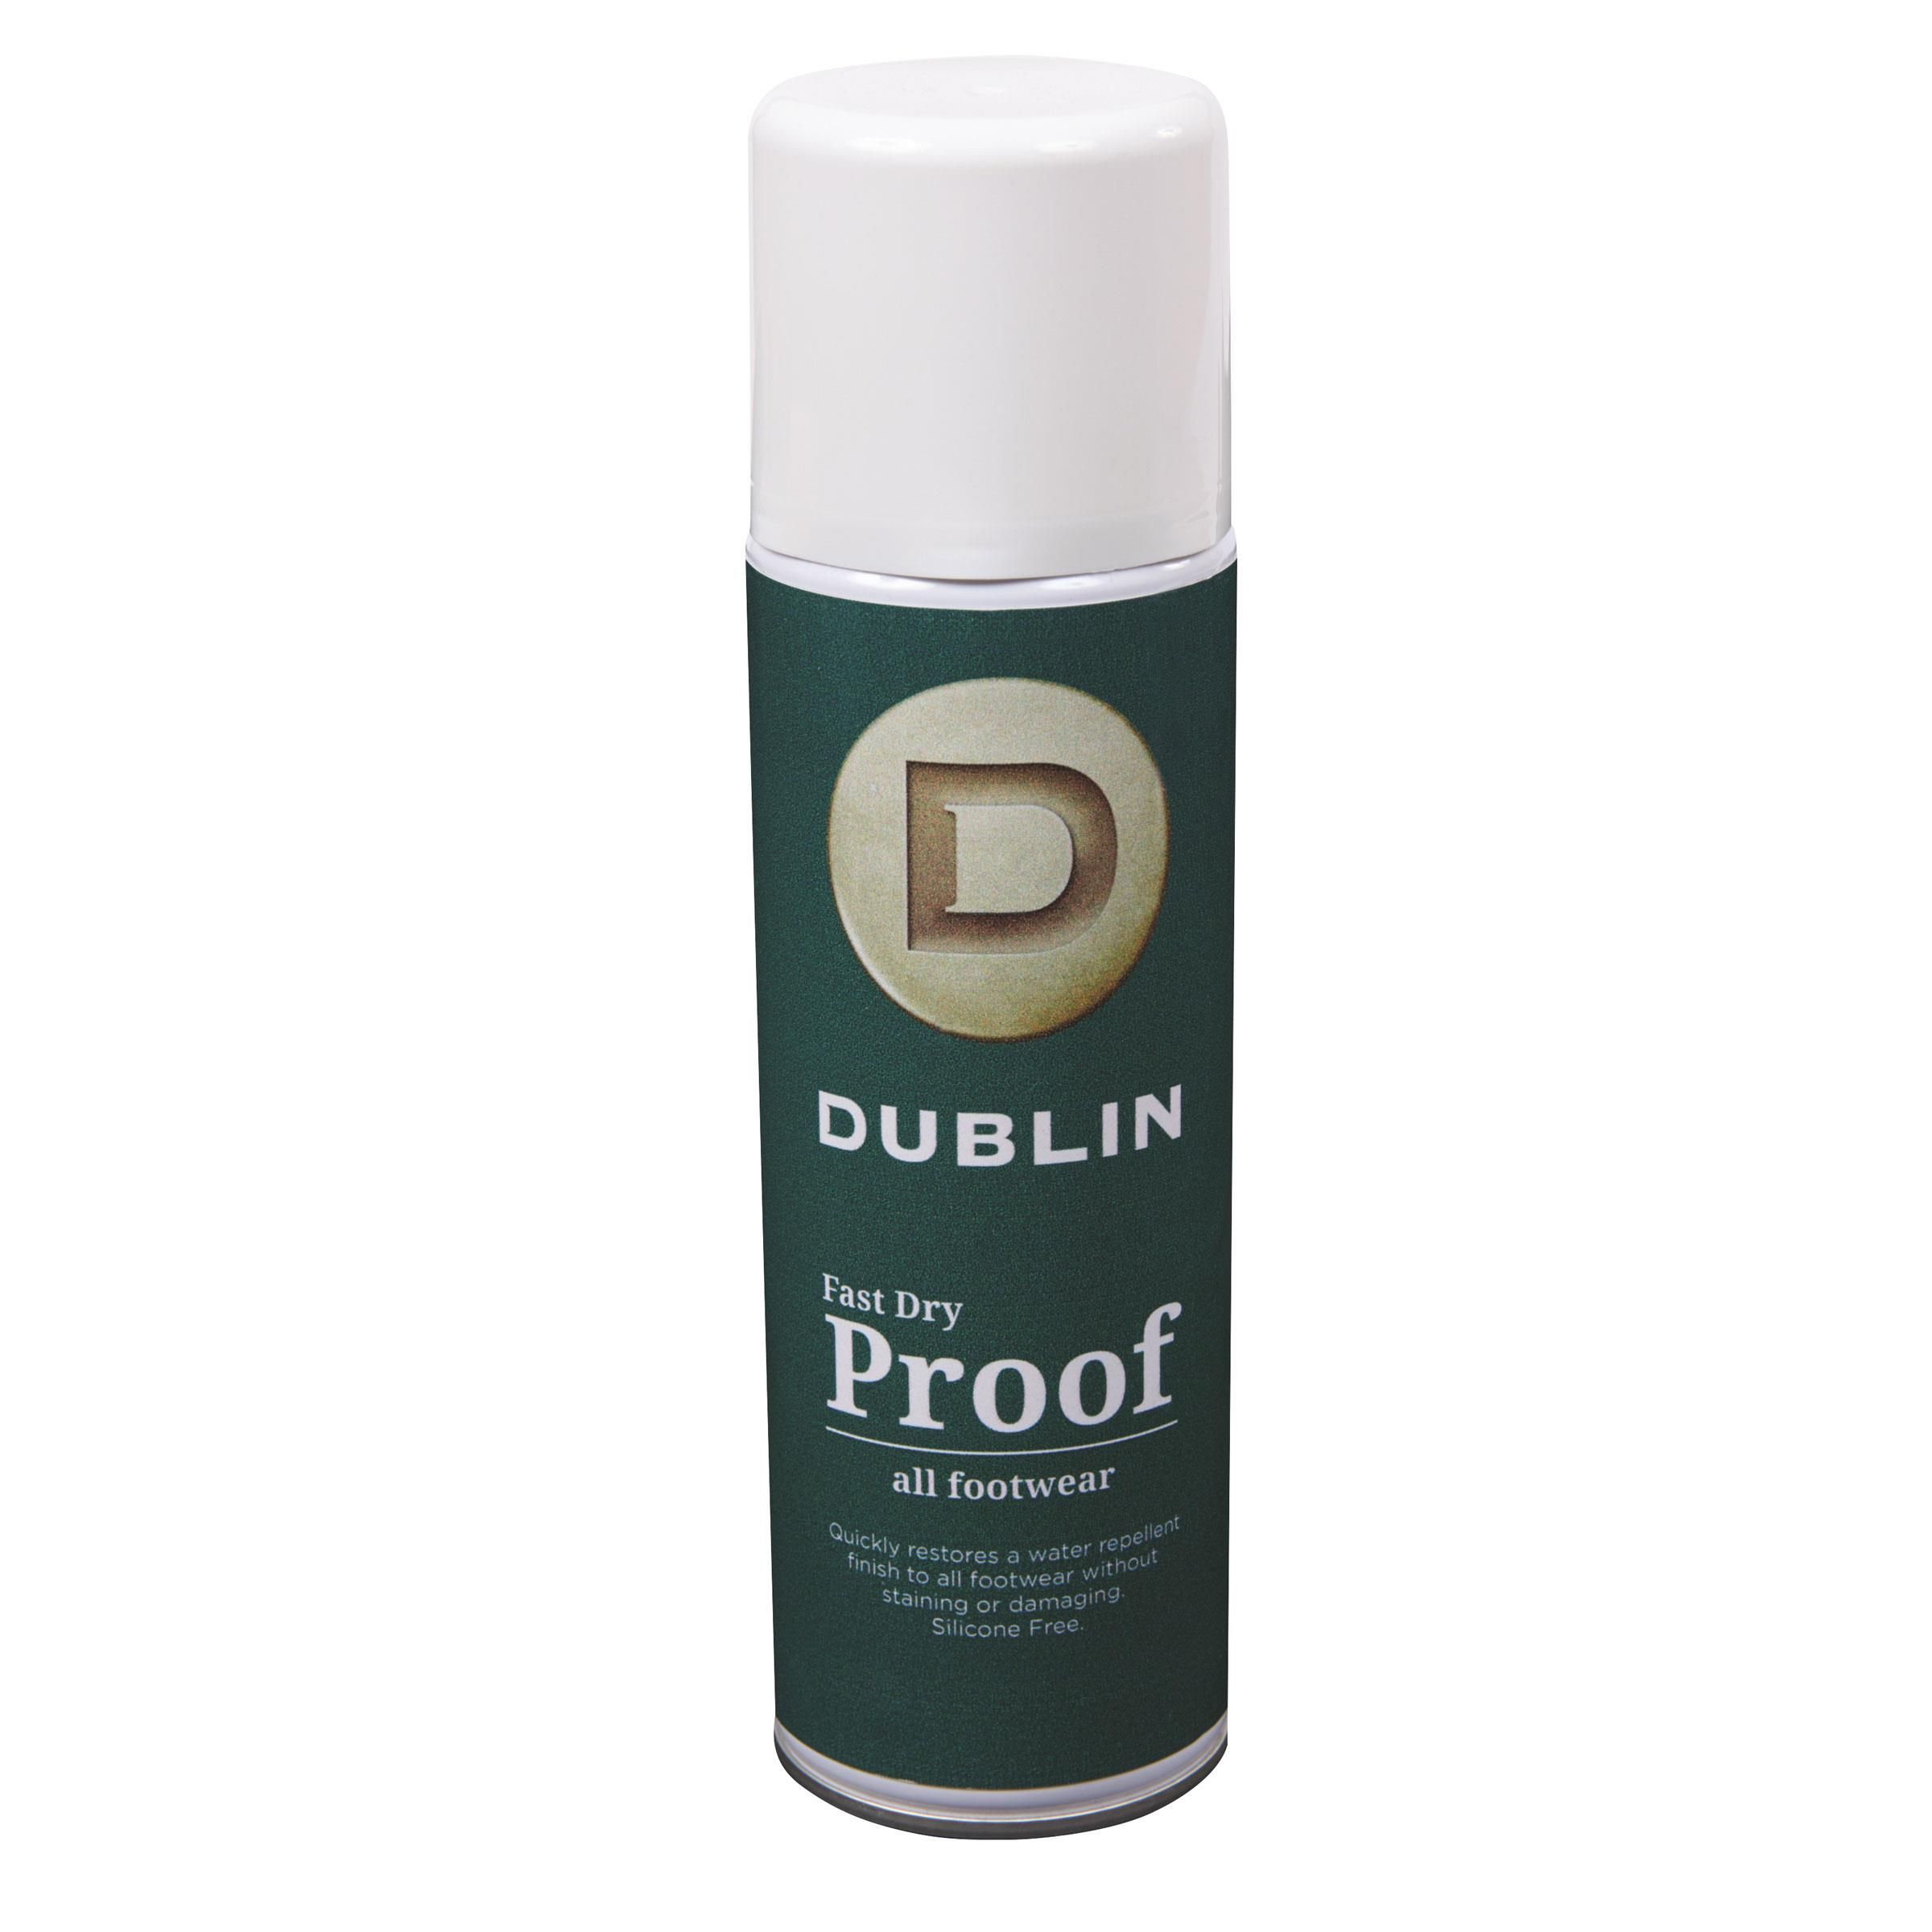 Dublin Fast Dry Proof Spray